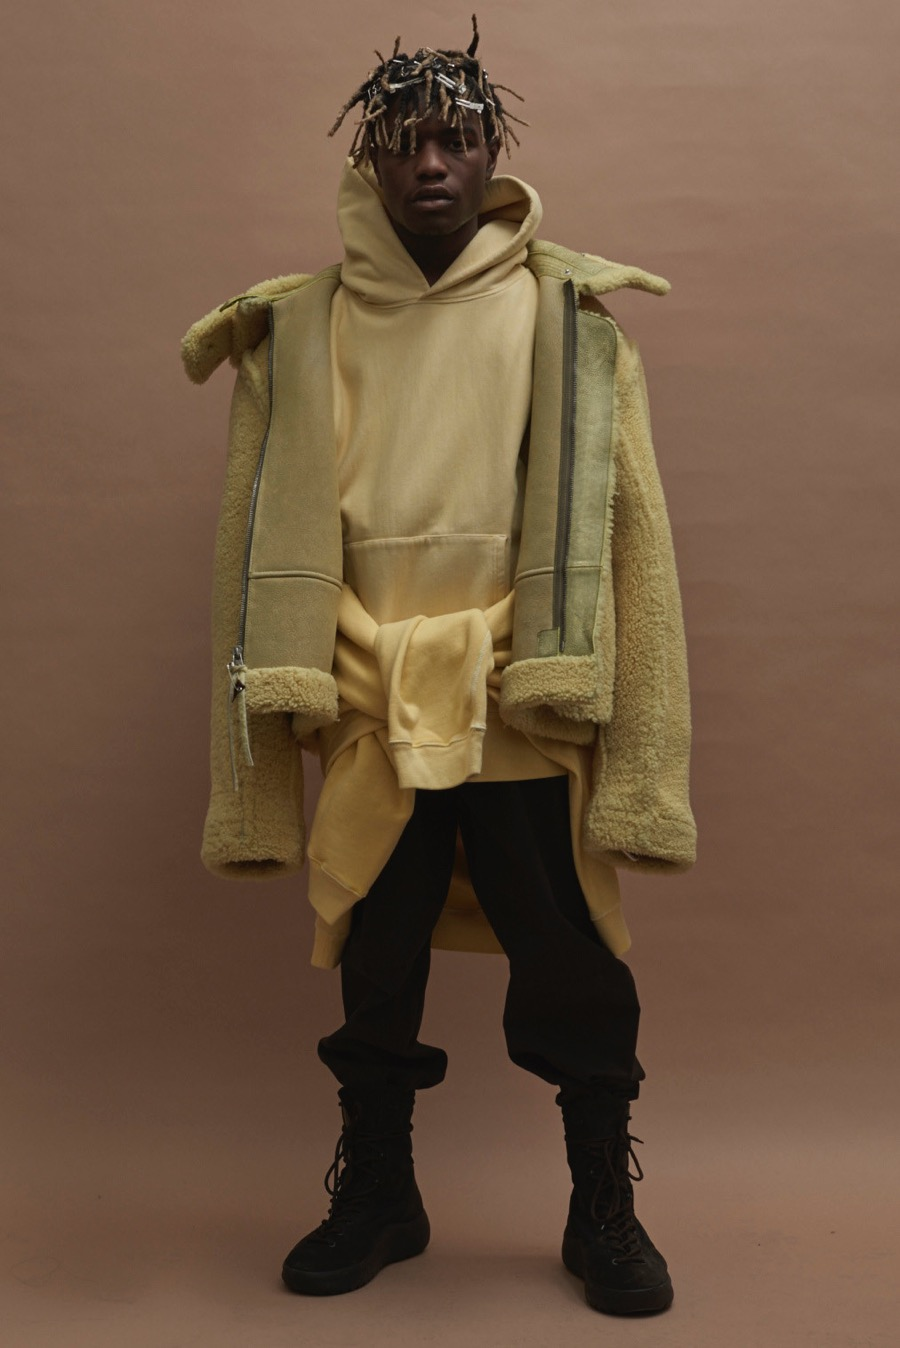 Yeezy by Kanye West Fall/Winter 2016